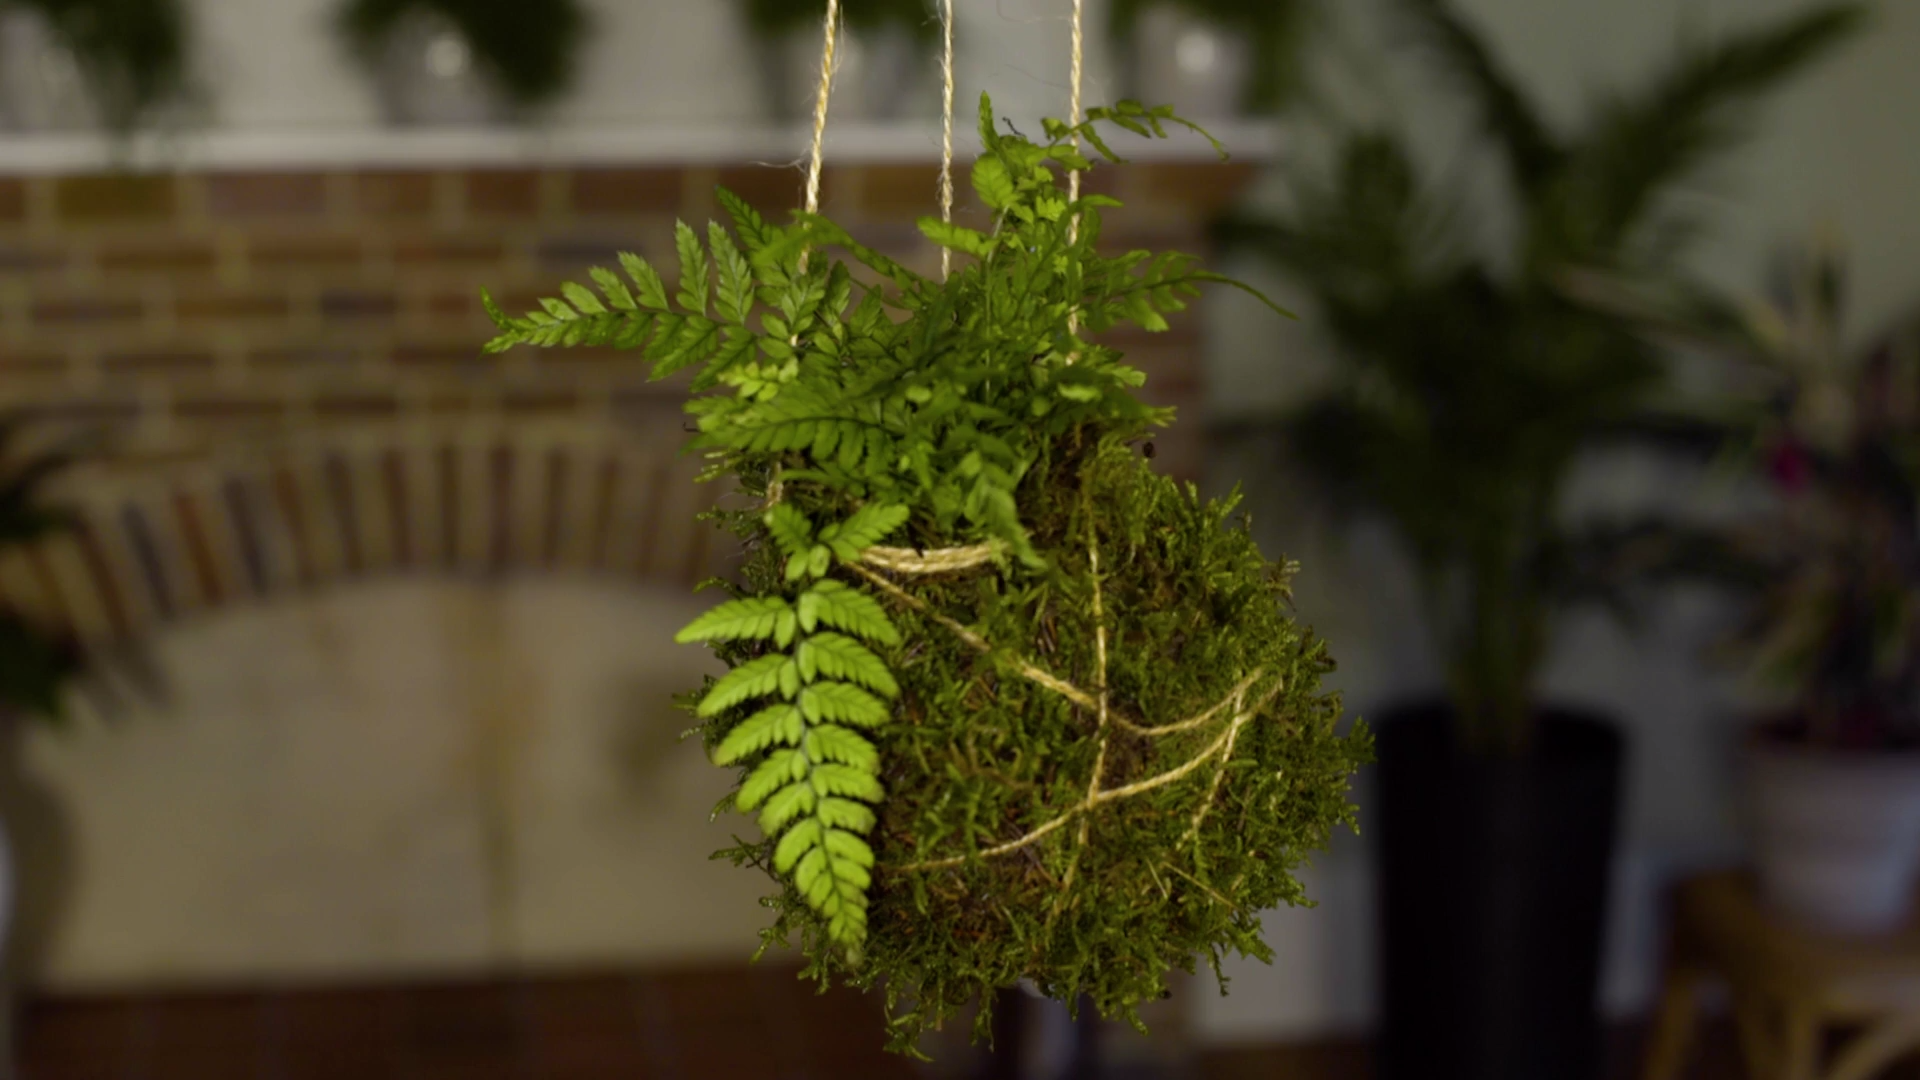 Presenter, writer and gardener Ellen Mary, shows you how to make kokedama, a type of Japanese hanging bonsai. This is a fun project to make in an afternoon.